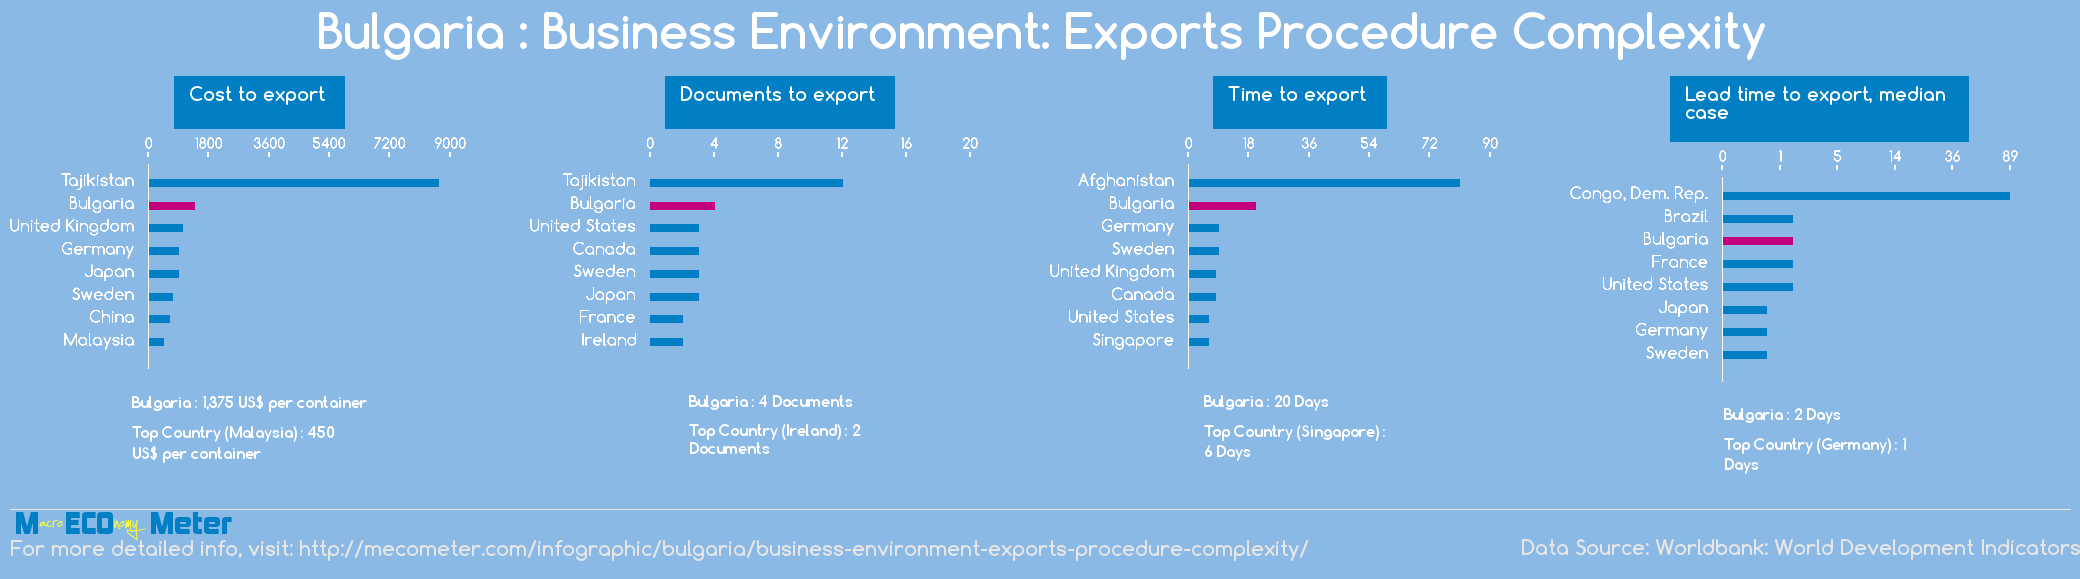 Bulgaria : Business Environment: Exports Procedure Complexity